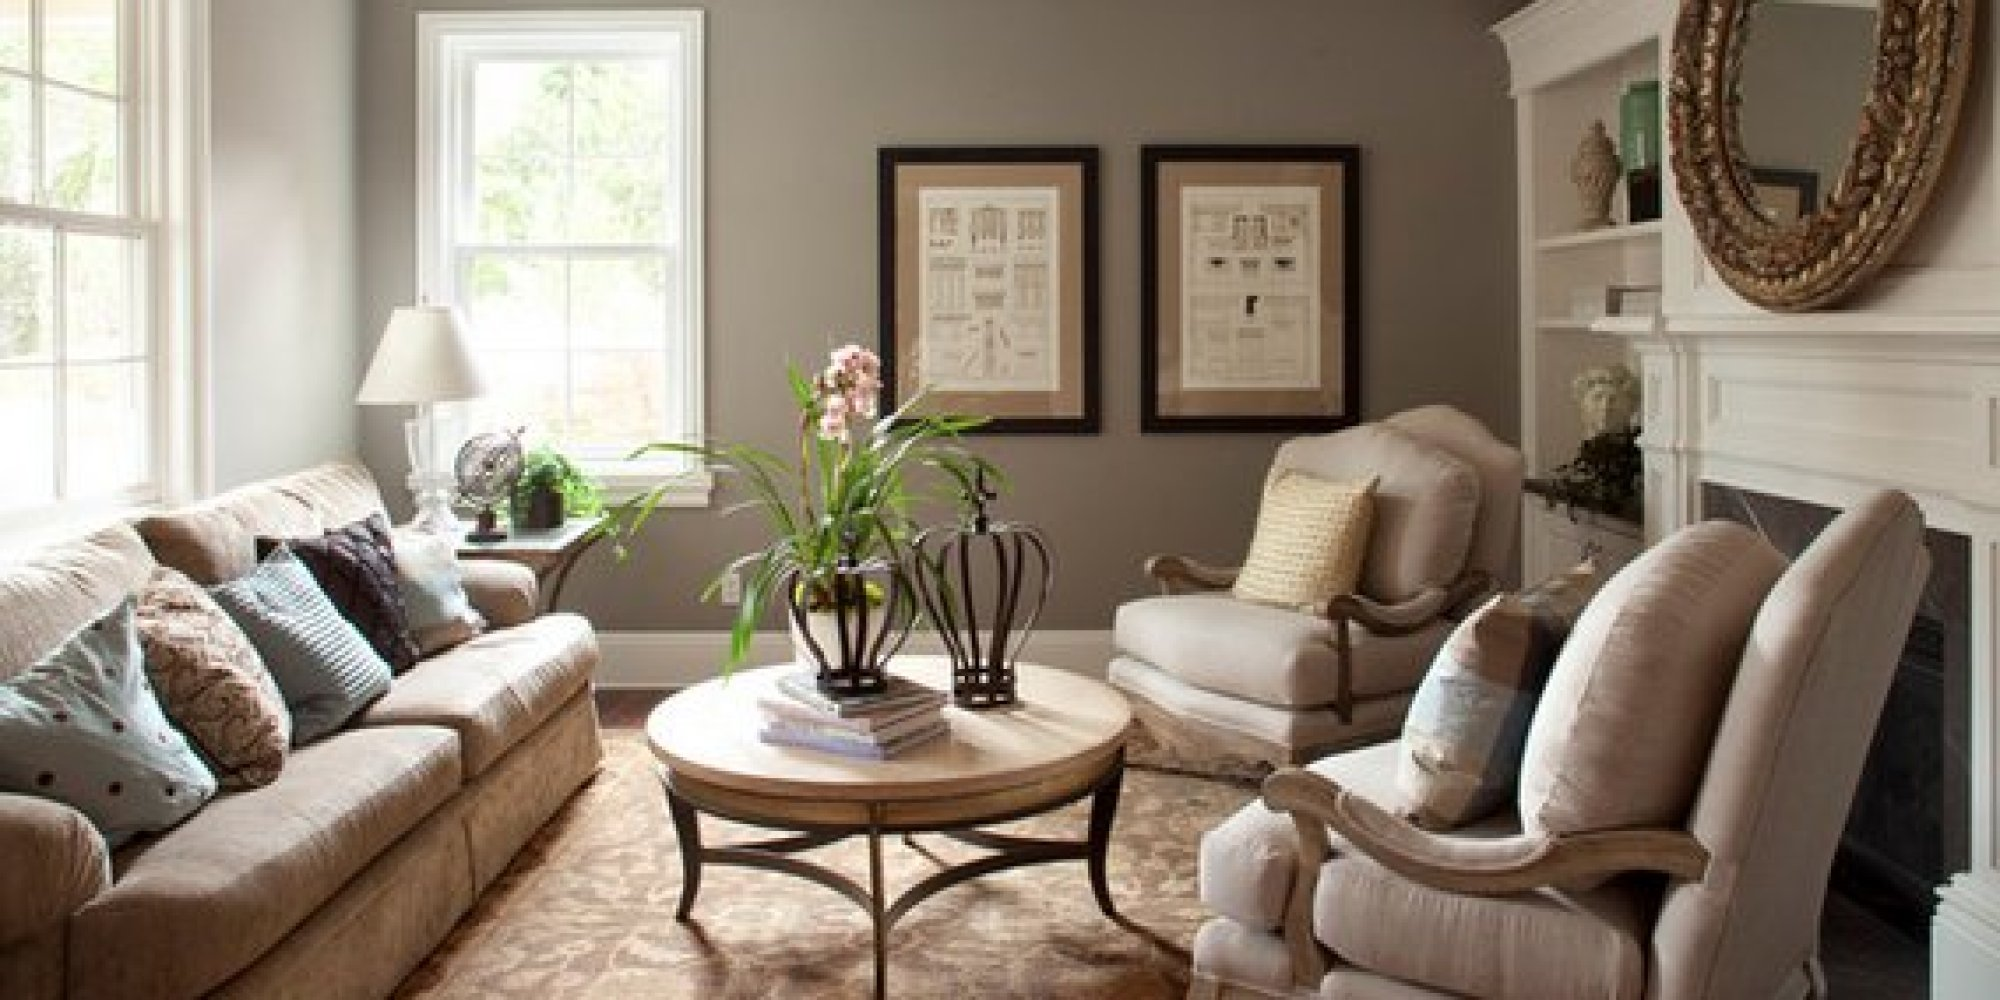 New Bedroom Paint Colors The 6 Best Paint Colors That Work In Any Home Huffpost